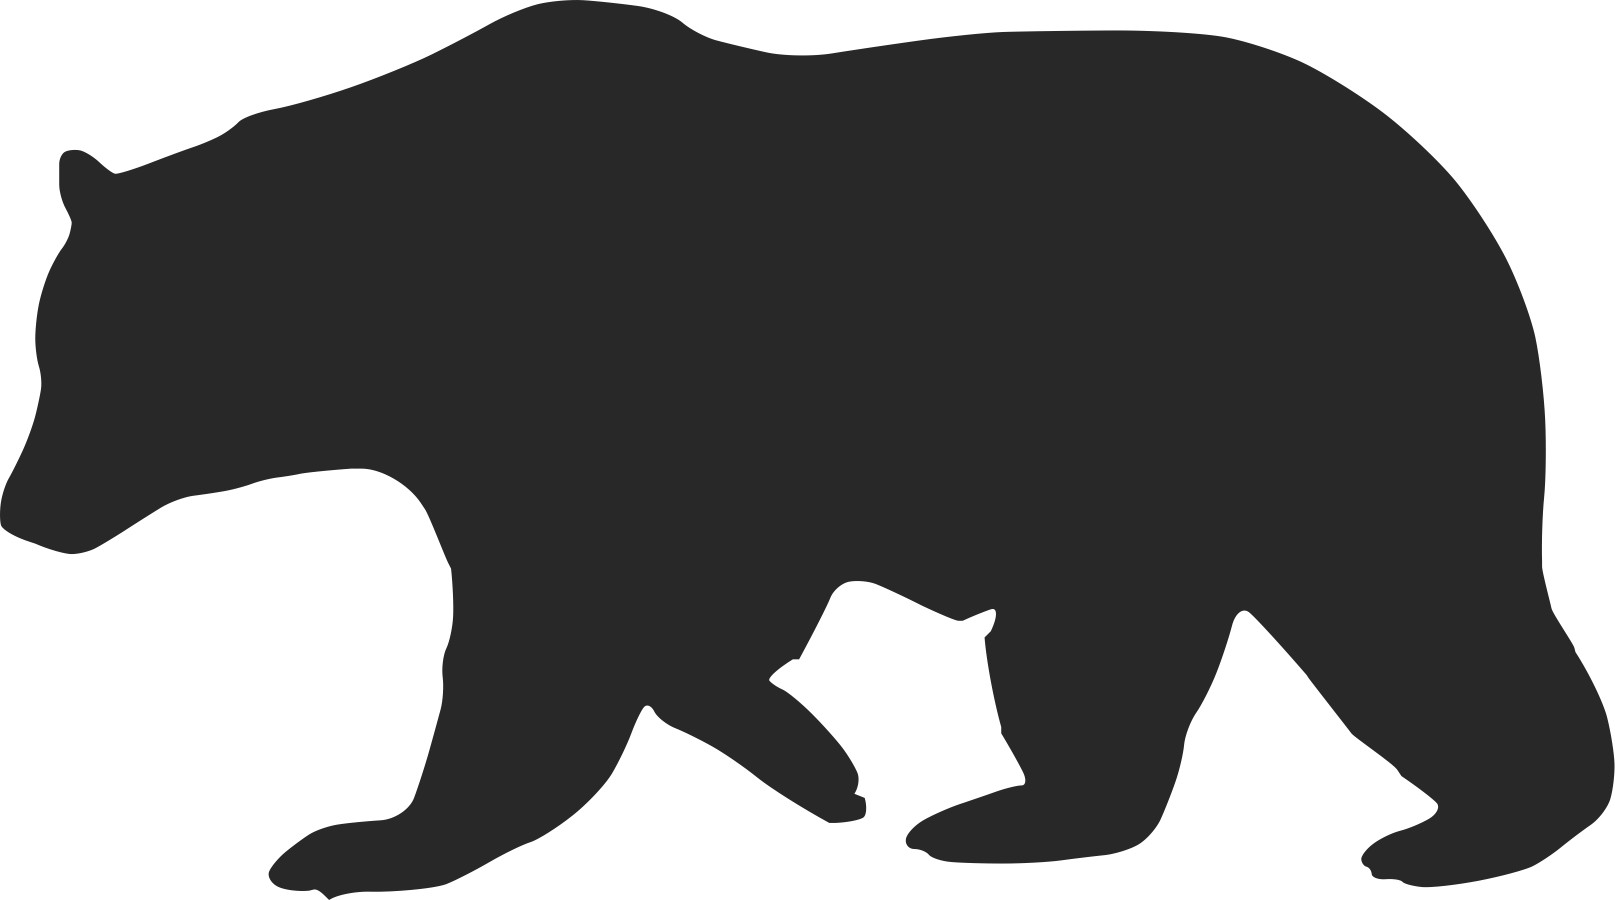 Grizzly Bear clipart outline #3